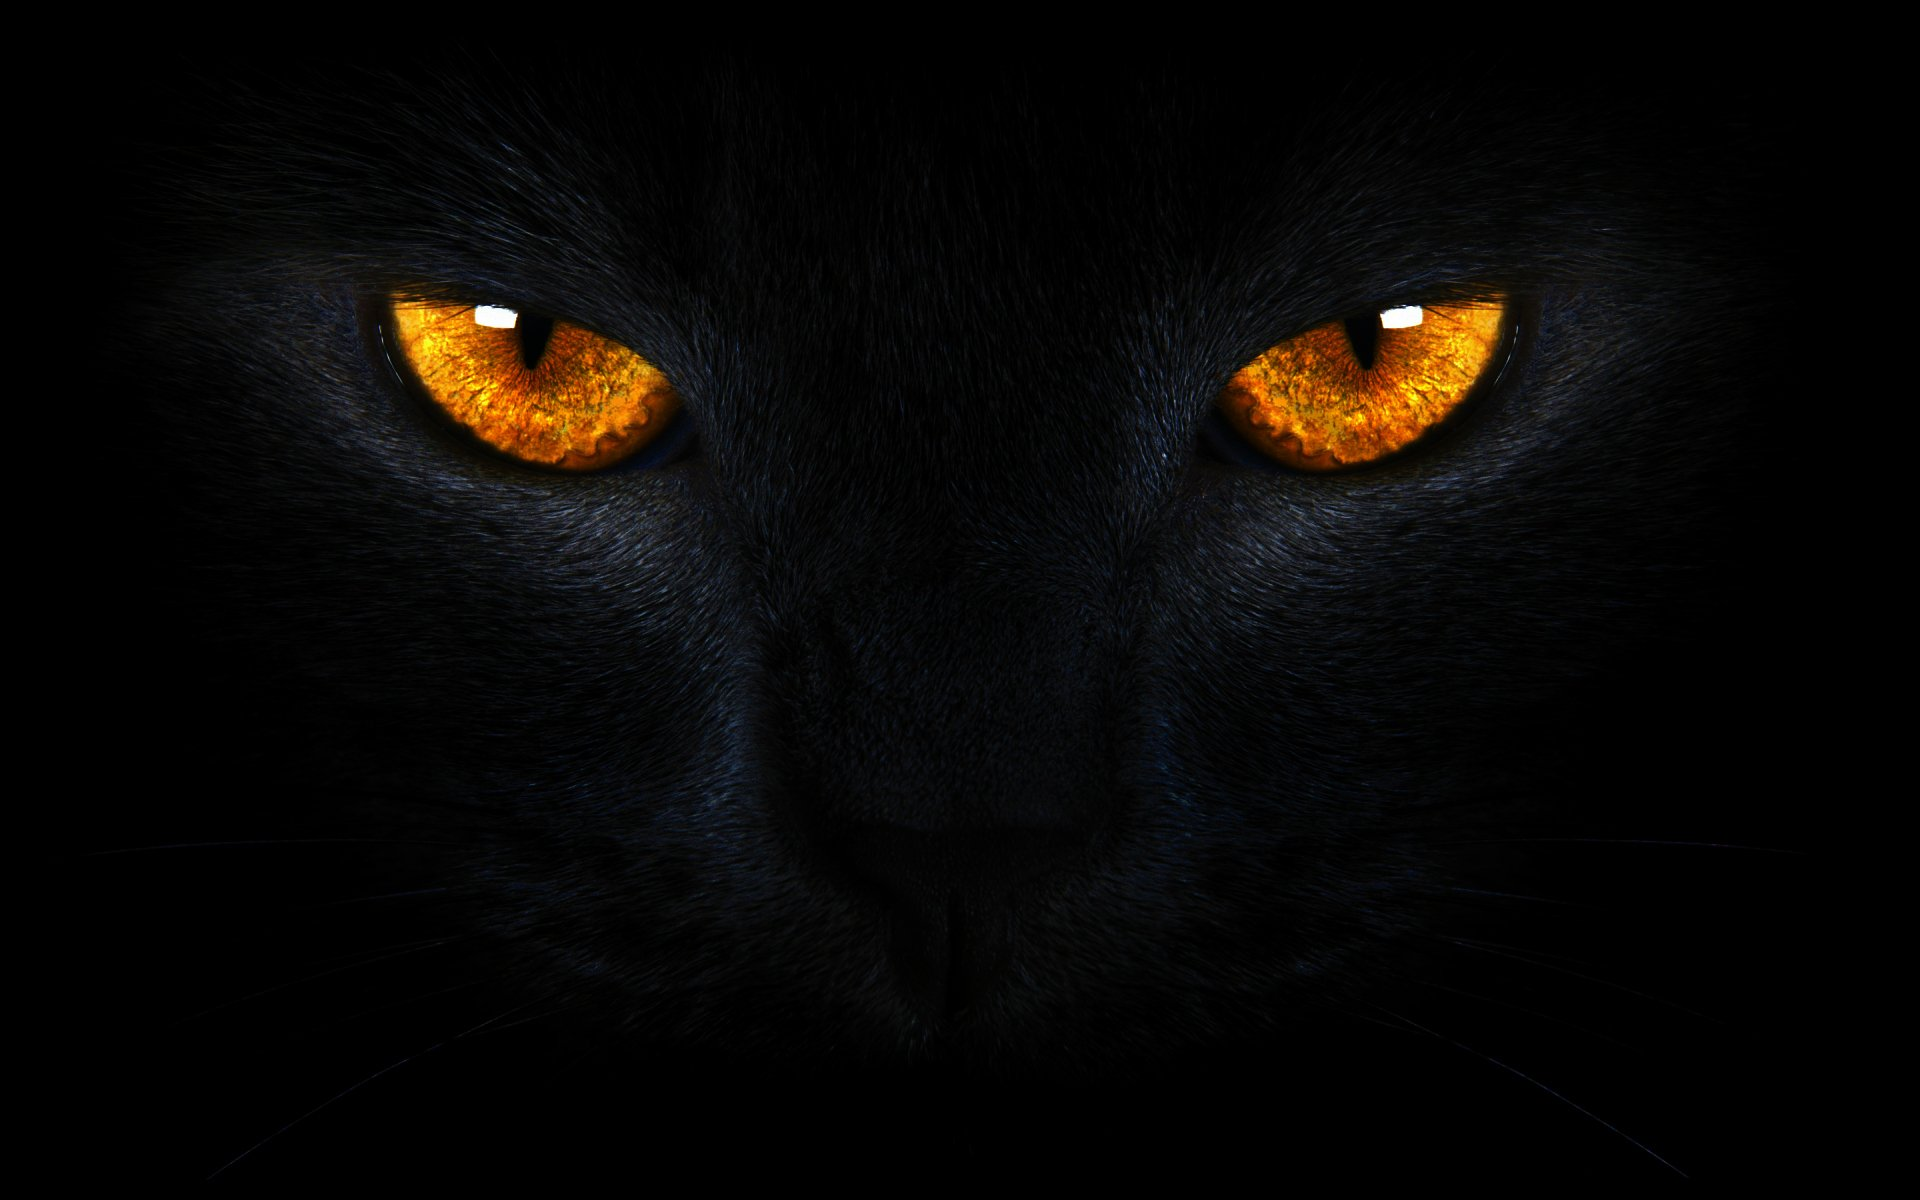 Golden Cat Eyes wallpaper   ForWallpapercom 1920x1200